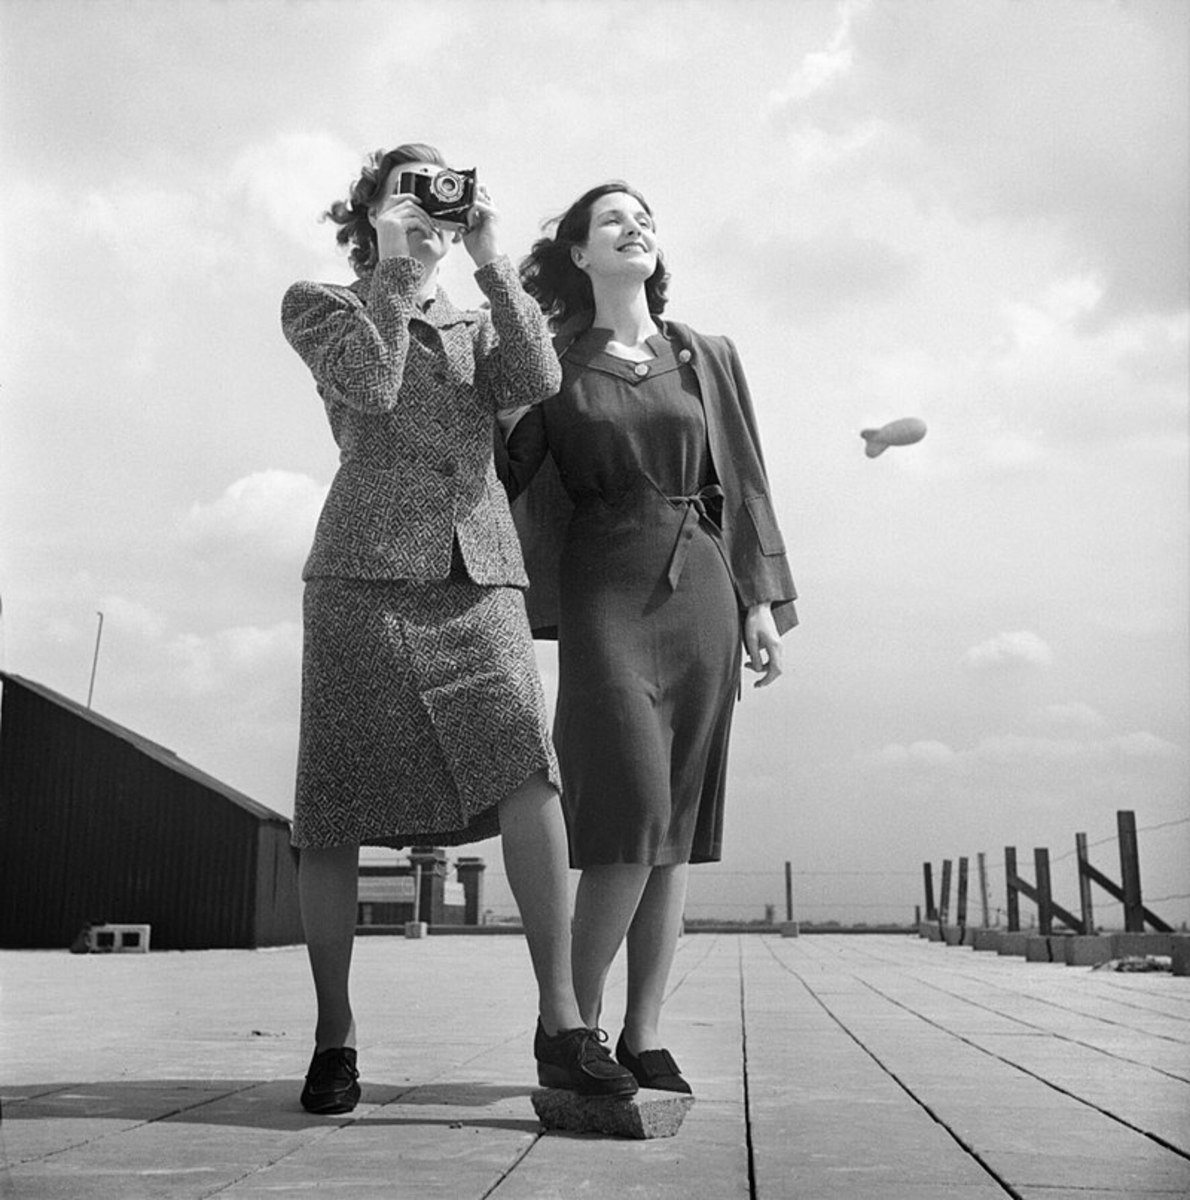 Fashion History - Women's Clothing in the 1940s